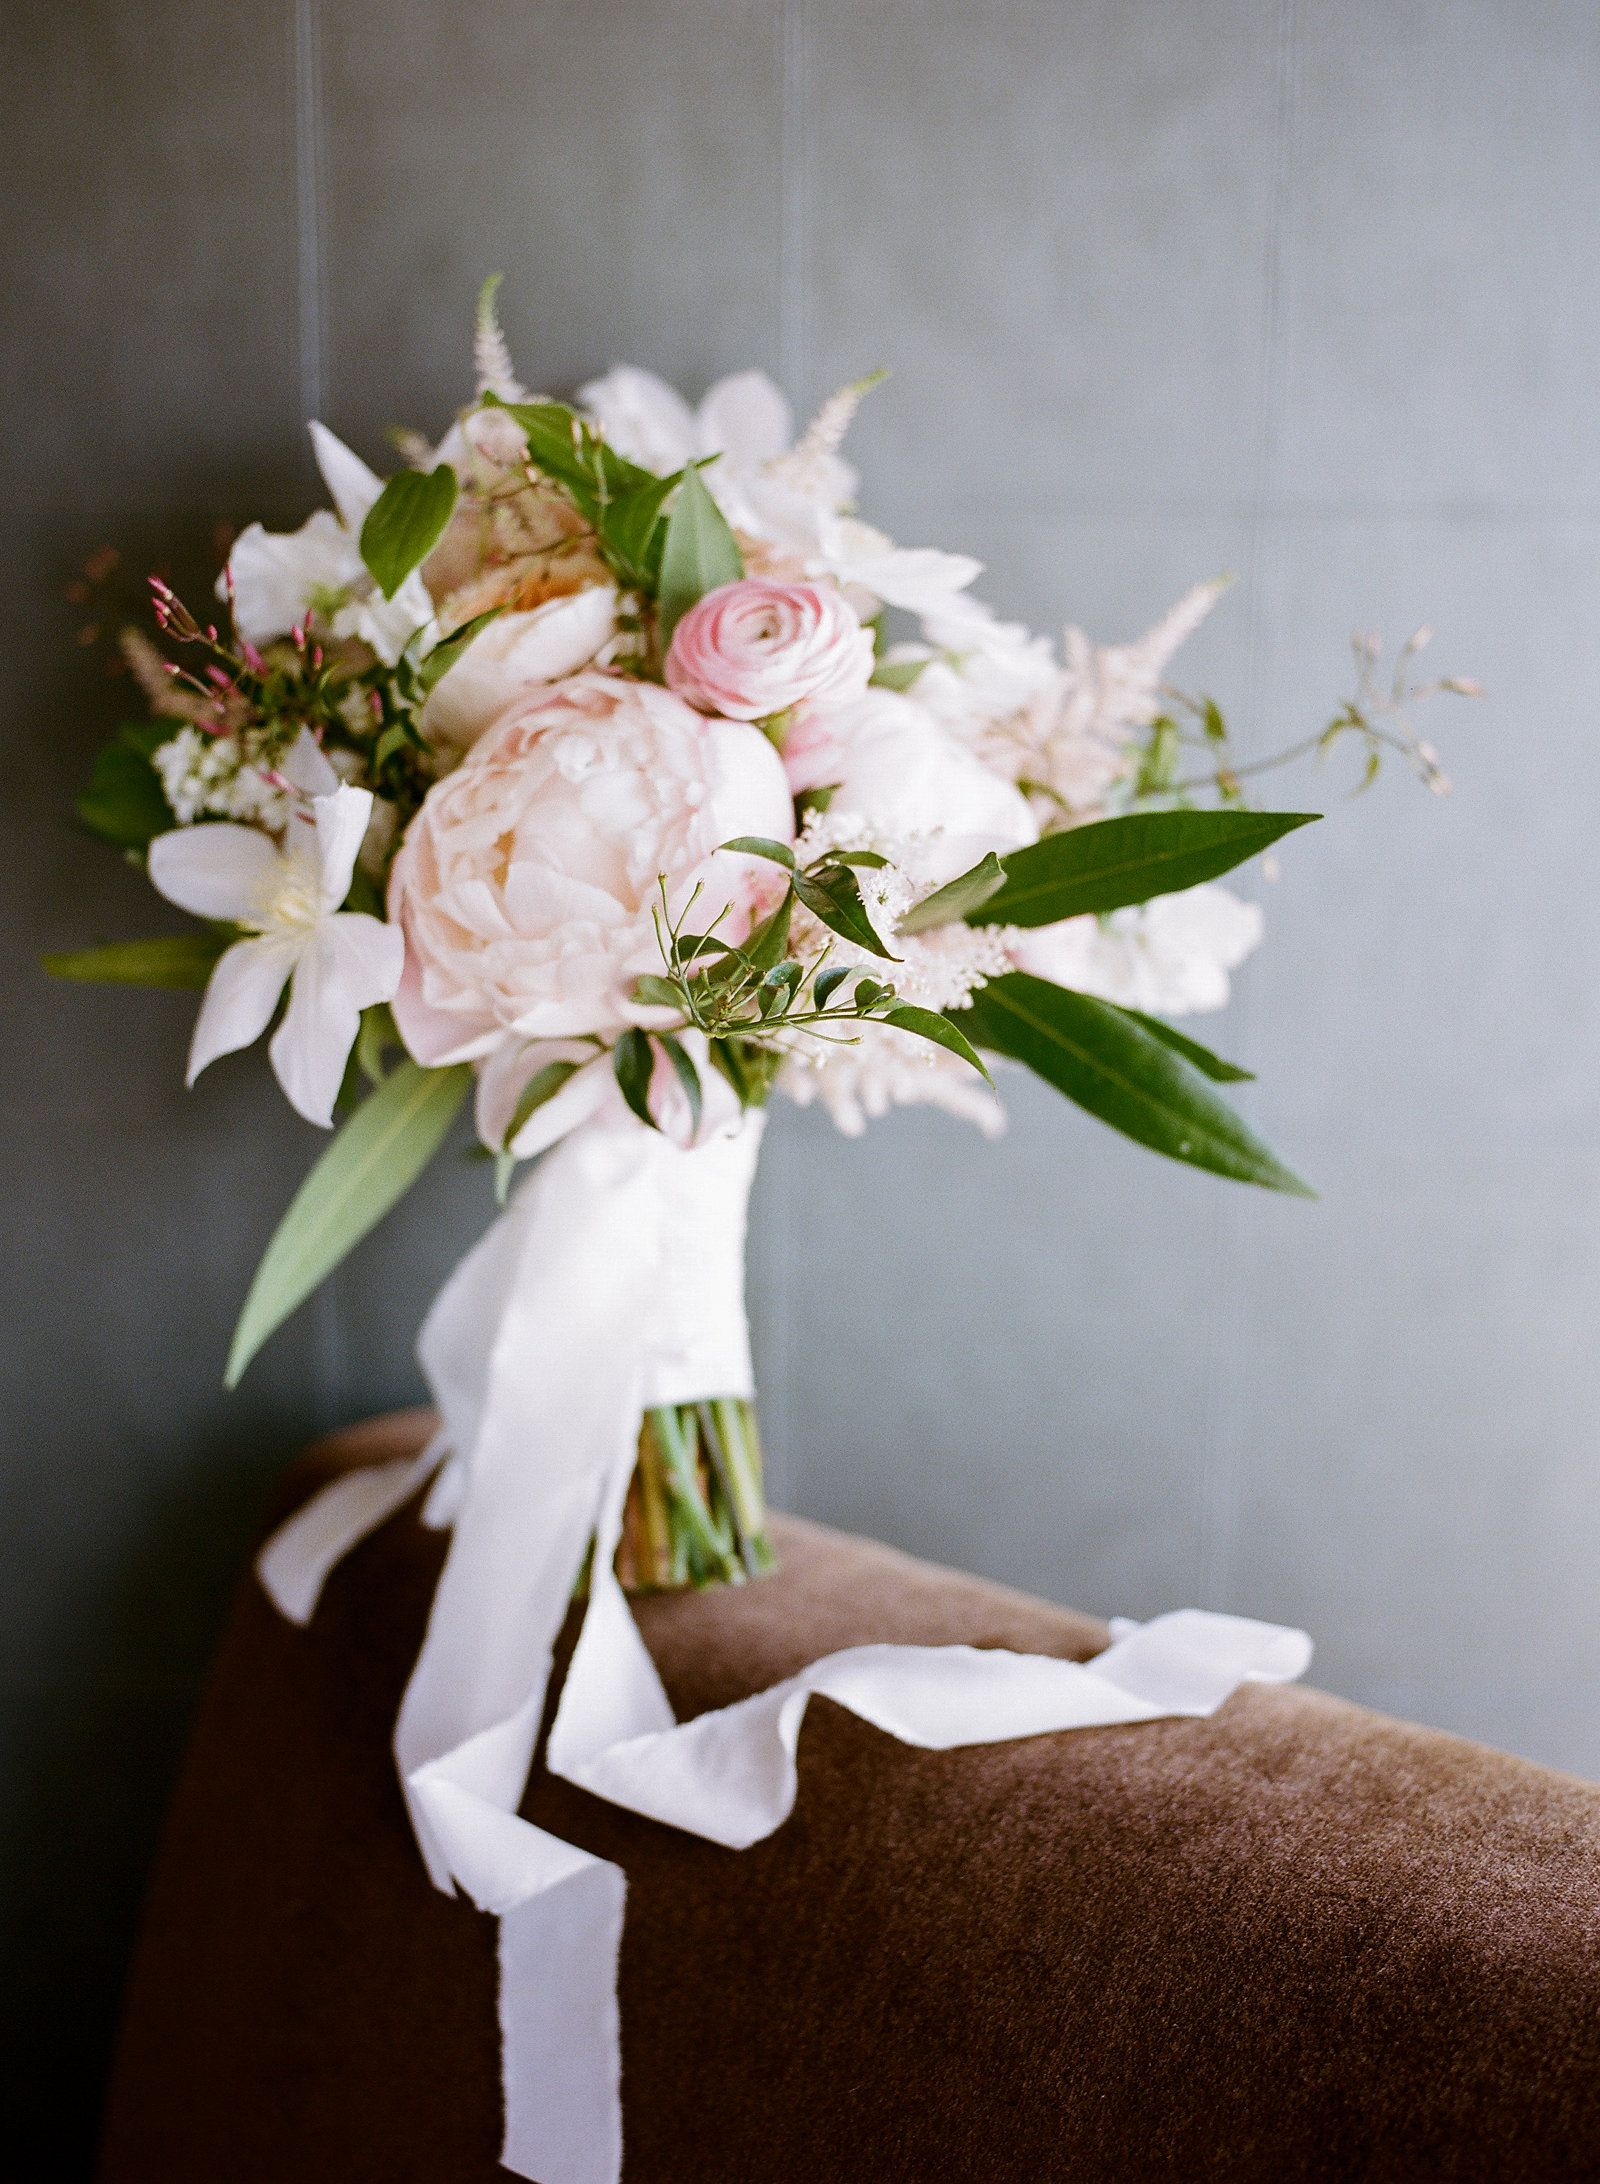 Organic bridal bouquet featuring peonies juliet garden roses organic bridal bouquet featuring peonies juliet garden roses clematis vine jasmine vine astilbe bay leaf and more by life in bloom with frou frou chic izmirmasajfo